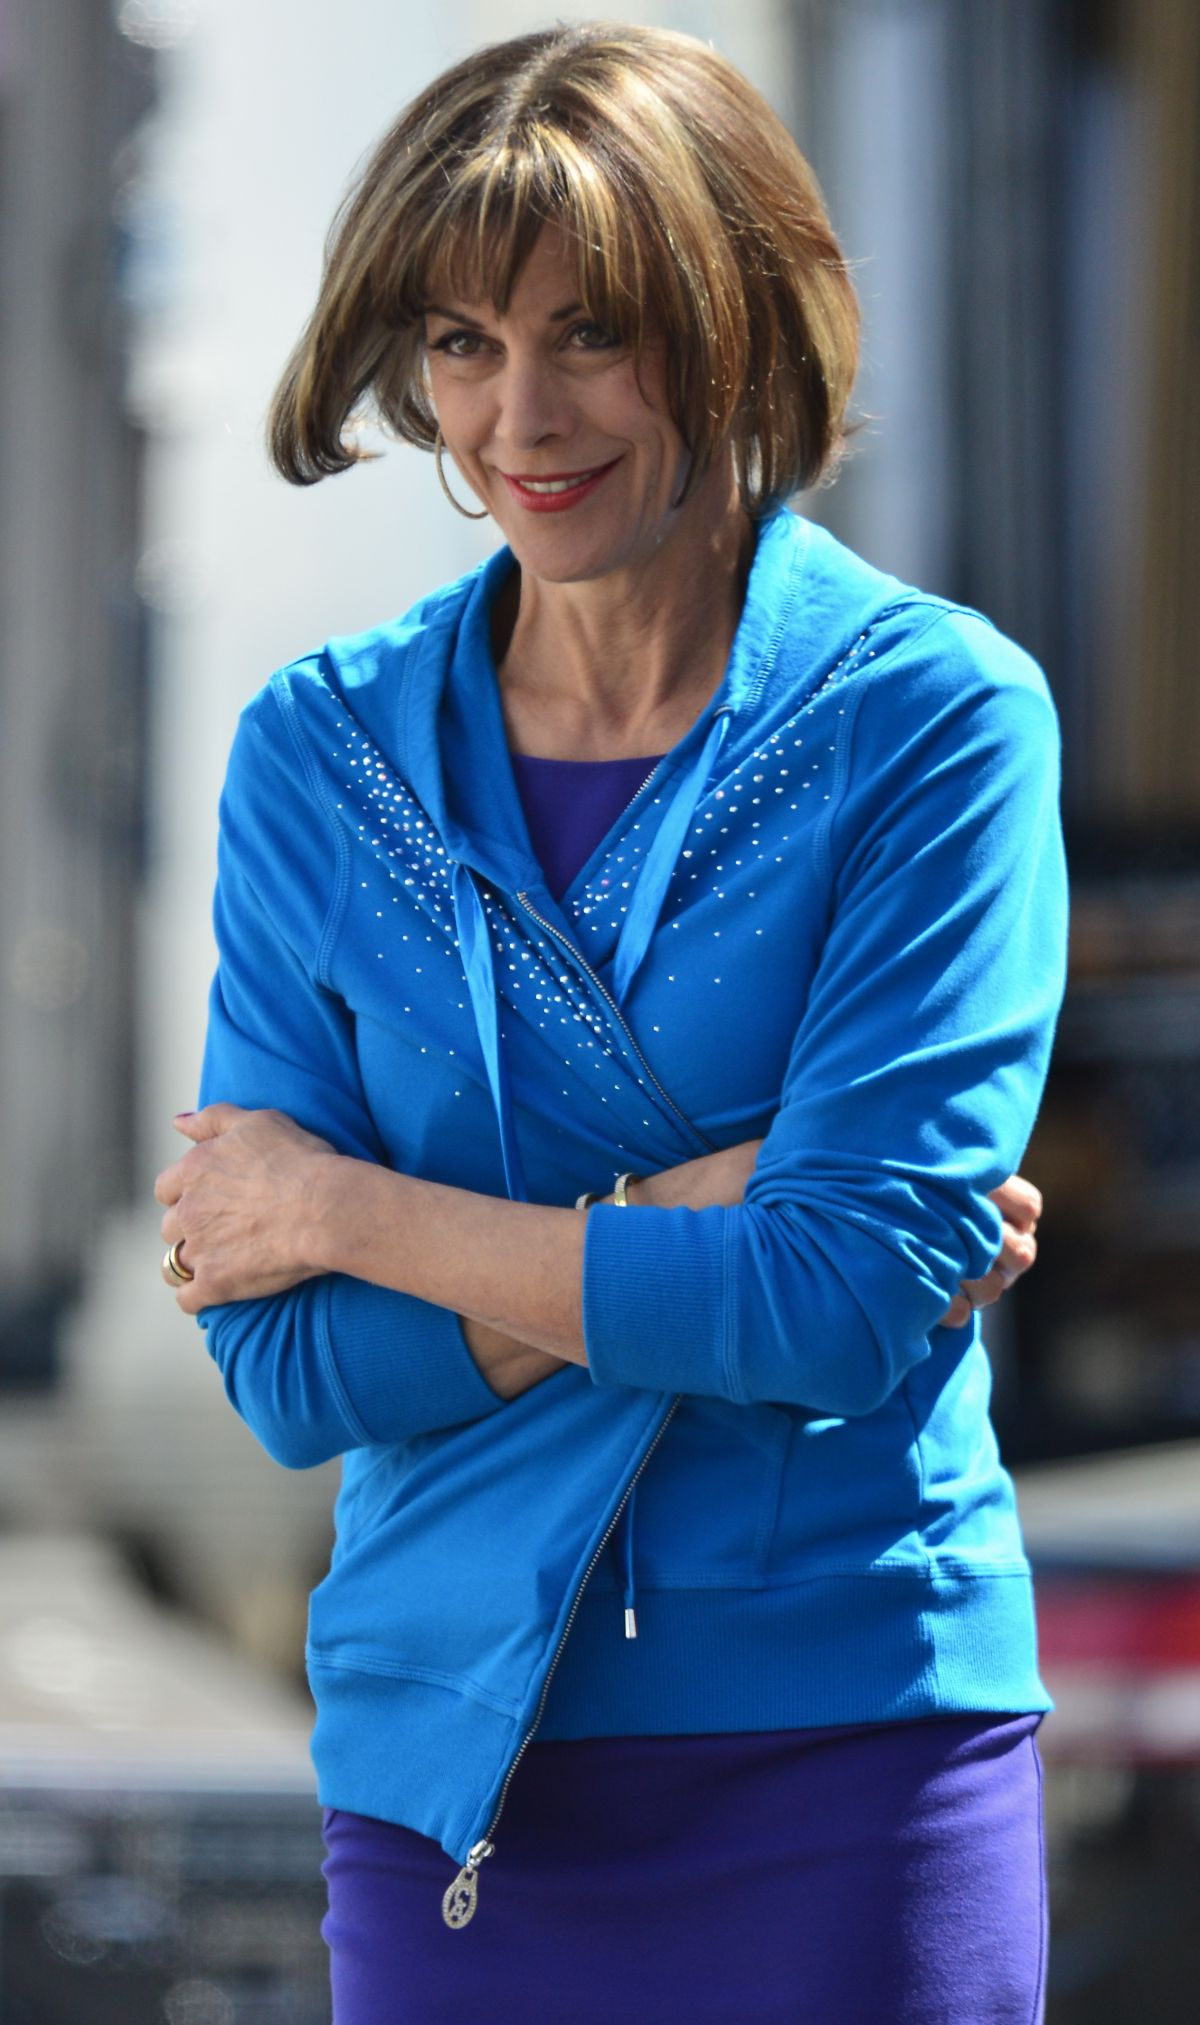 WENDIE MALICK at Hot in Cleveland Set in Santa Monica - HawtCelebs